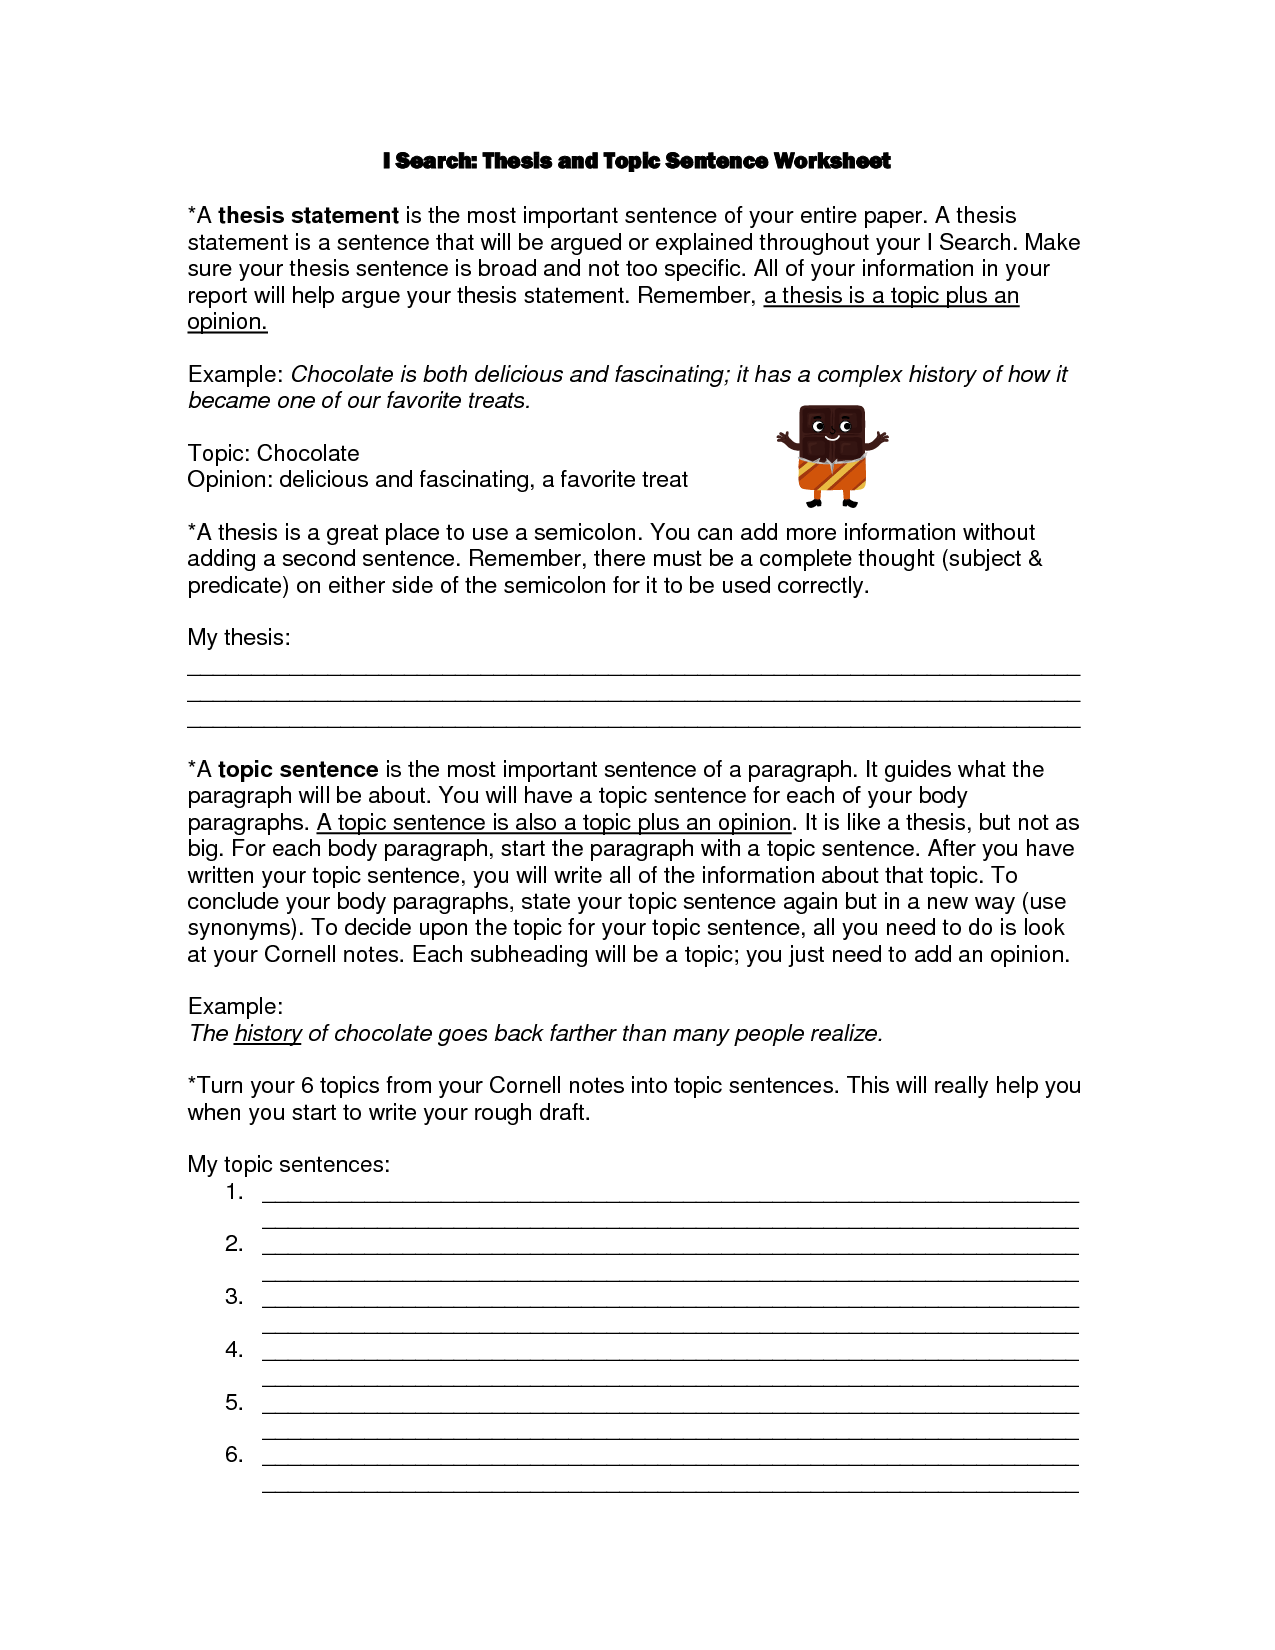 11 Best Images Of Topic Sentence Worksheets